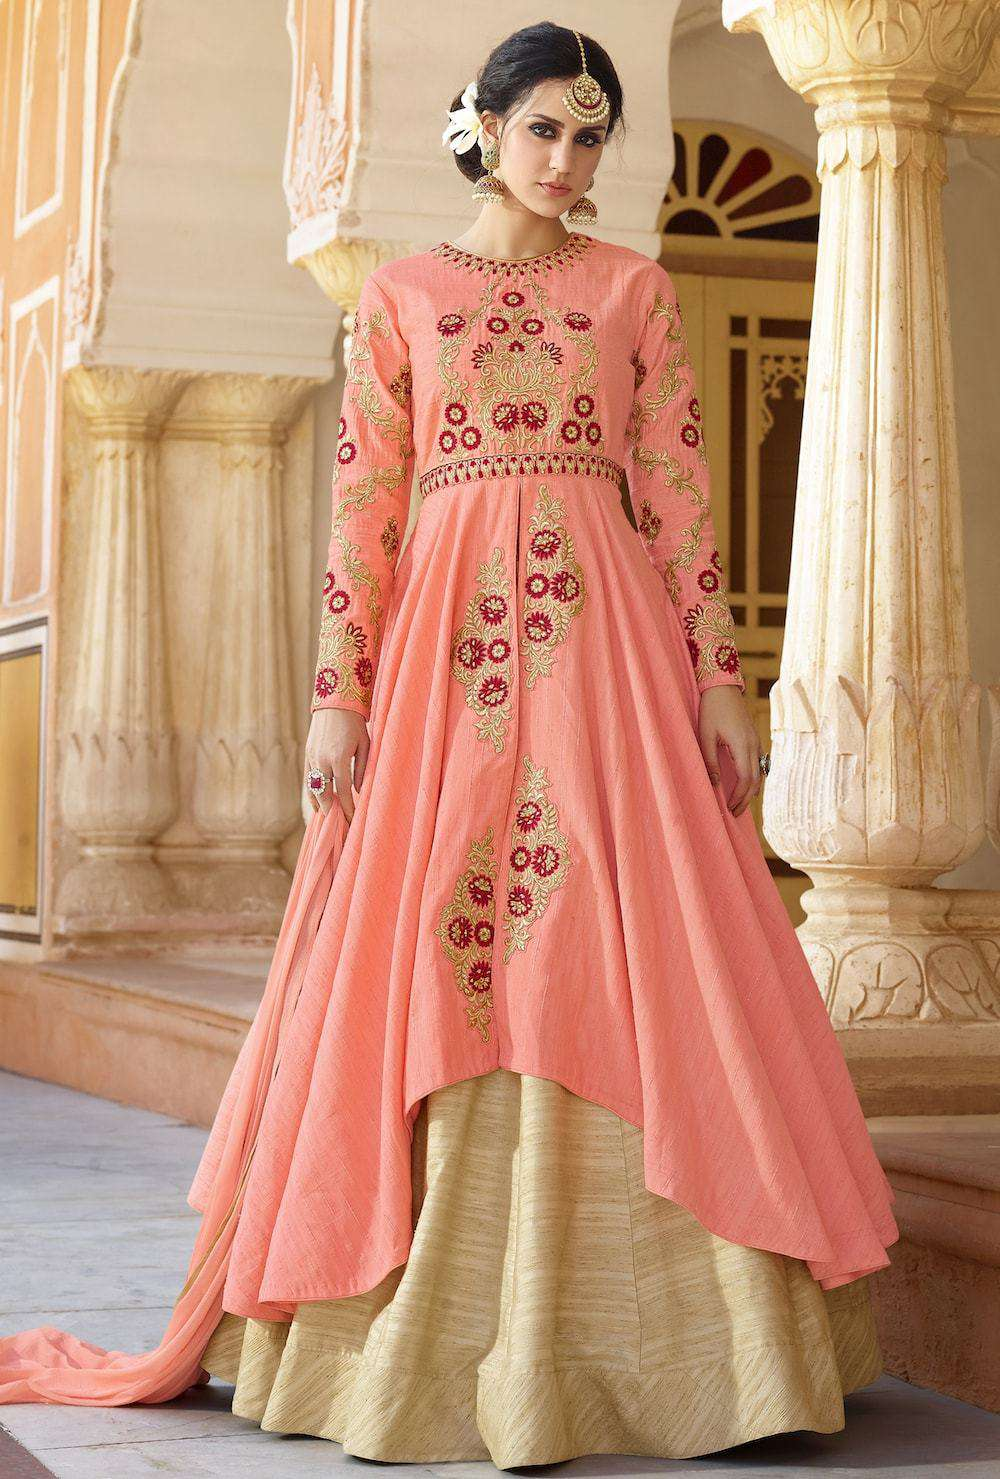 Designer Embroidered Peach & Gold Anarkali Salwar Kameez MYSK-516